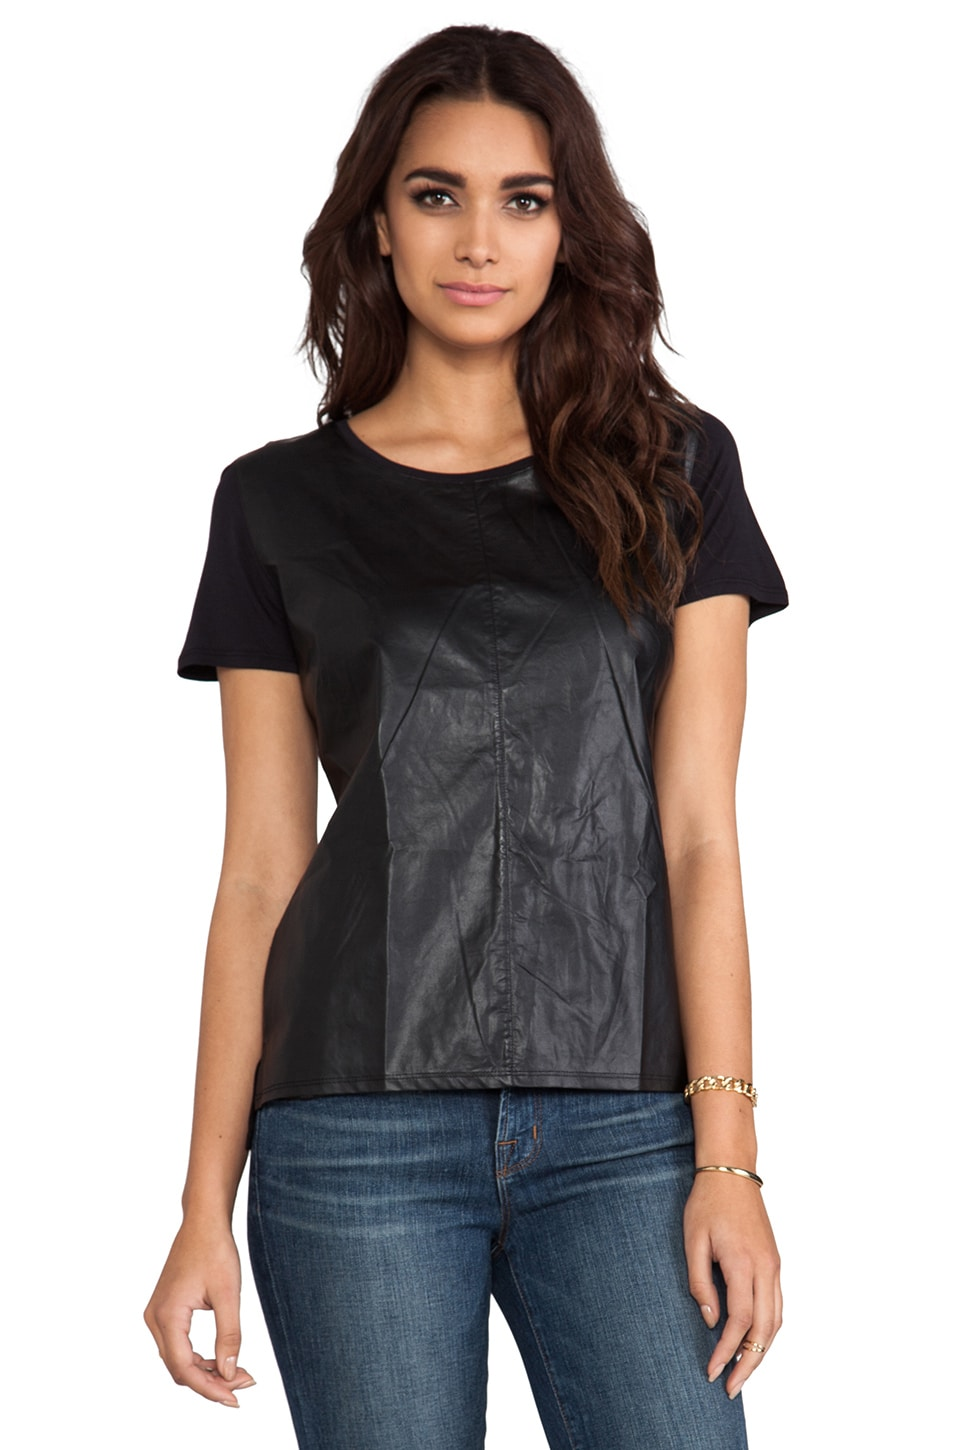 C&C California Light Weight Faux Leather/Knit Mix Tee in Black